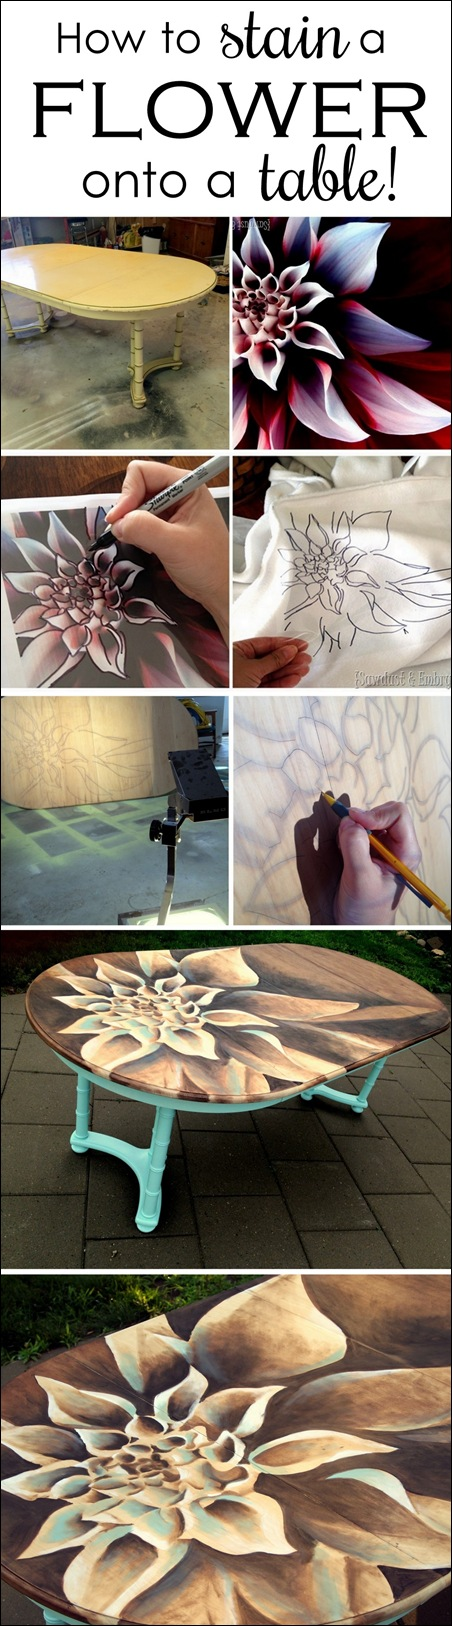 Use WOOD STAIN to create artwork on furniture! Tutorial and time-lapse video!